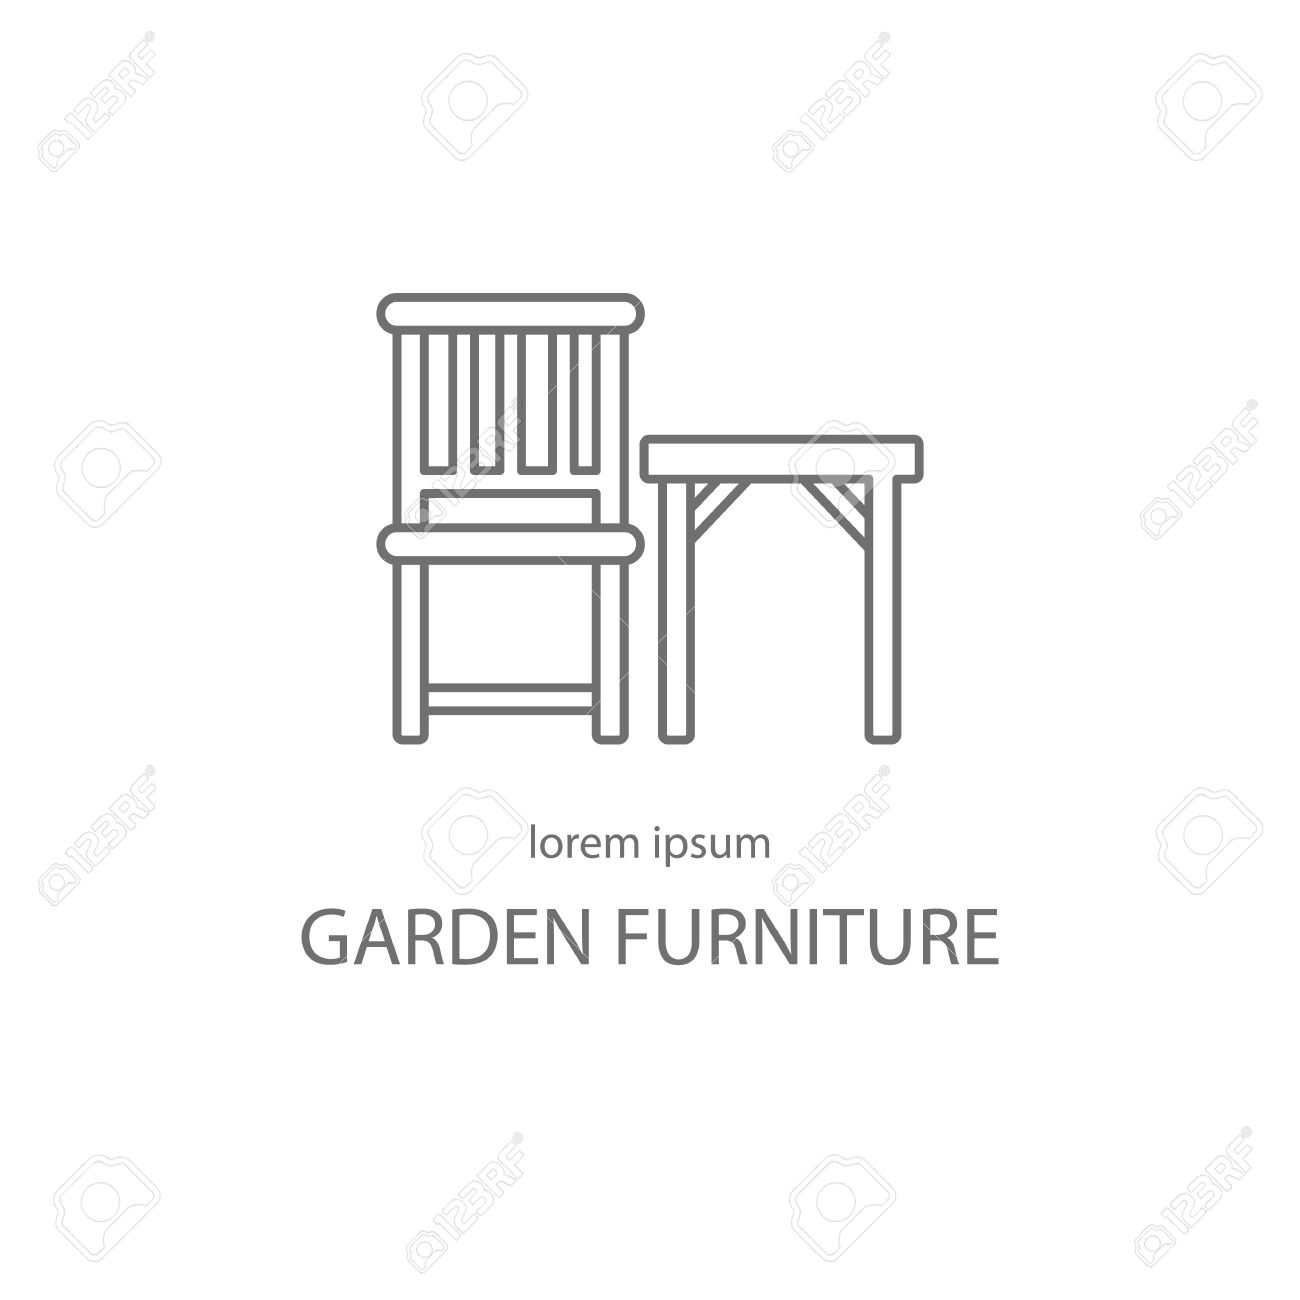 garden furniture logotype design templates modern easy to edit